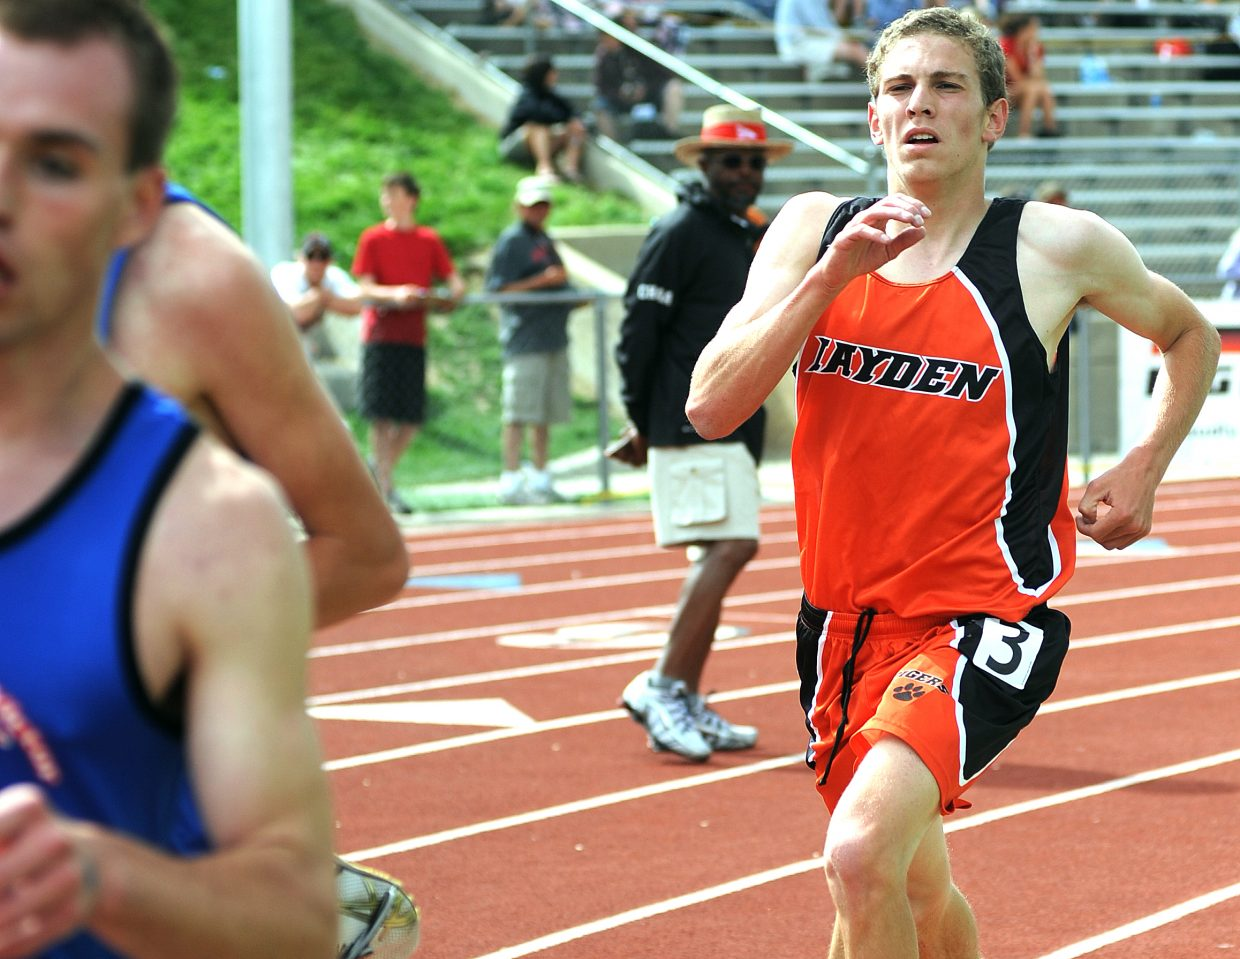 Hayden junior Chris Zirkel said he was disappointed that he wasn't able to move past eventual 3,200-meter champion Shawn Dubbs, from Cripple Creek, and runner-up Ty Williams, from Norwood, but he hung with the pair for most of Friday's race and finished third at the state track meet in Lakewood.